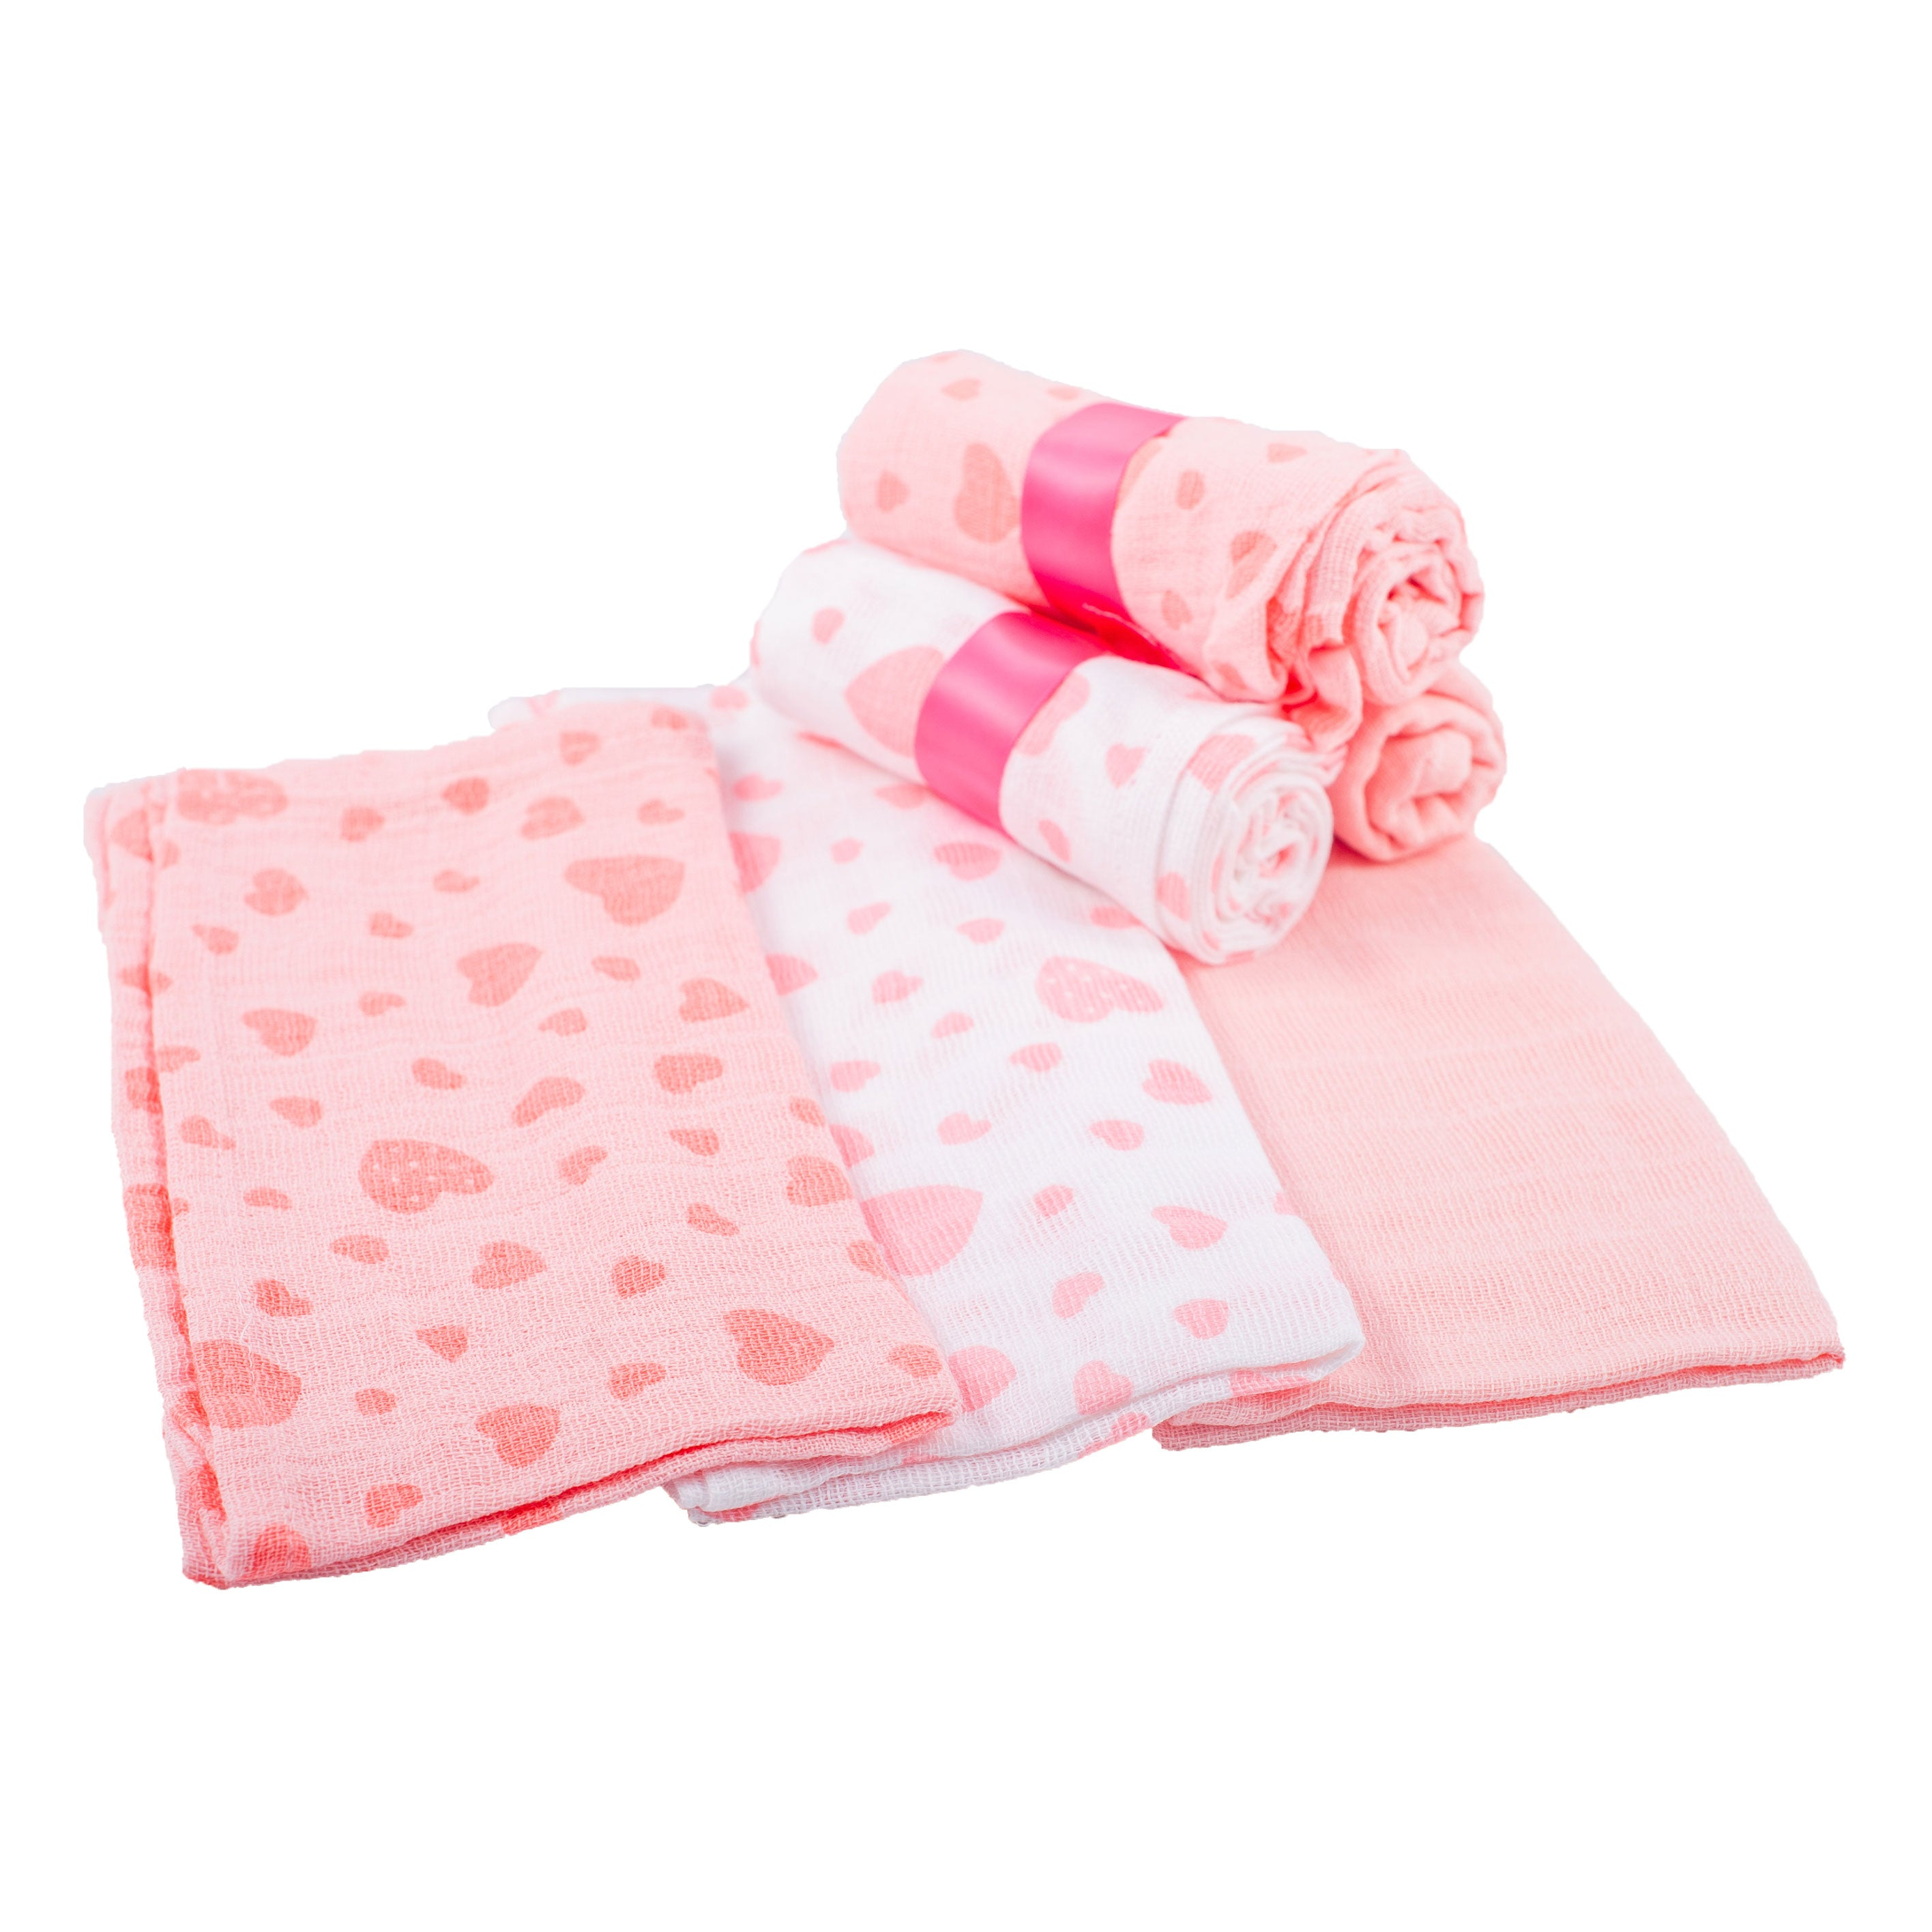 Muslin Squares x 12 - Pink